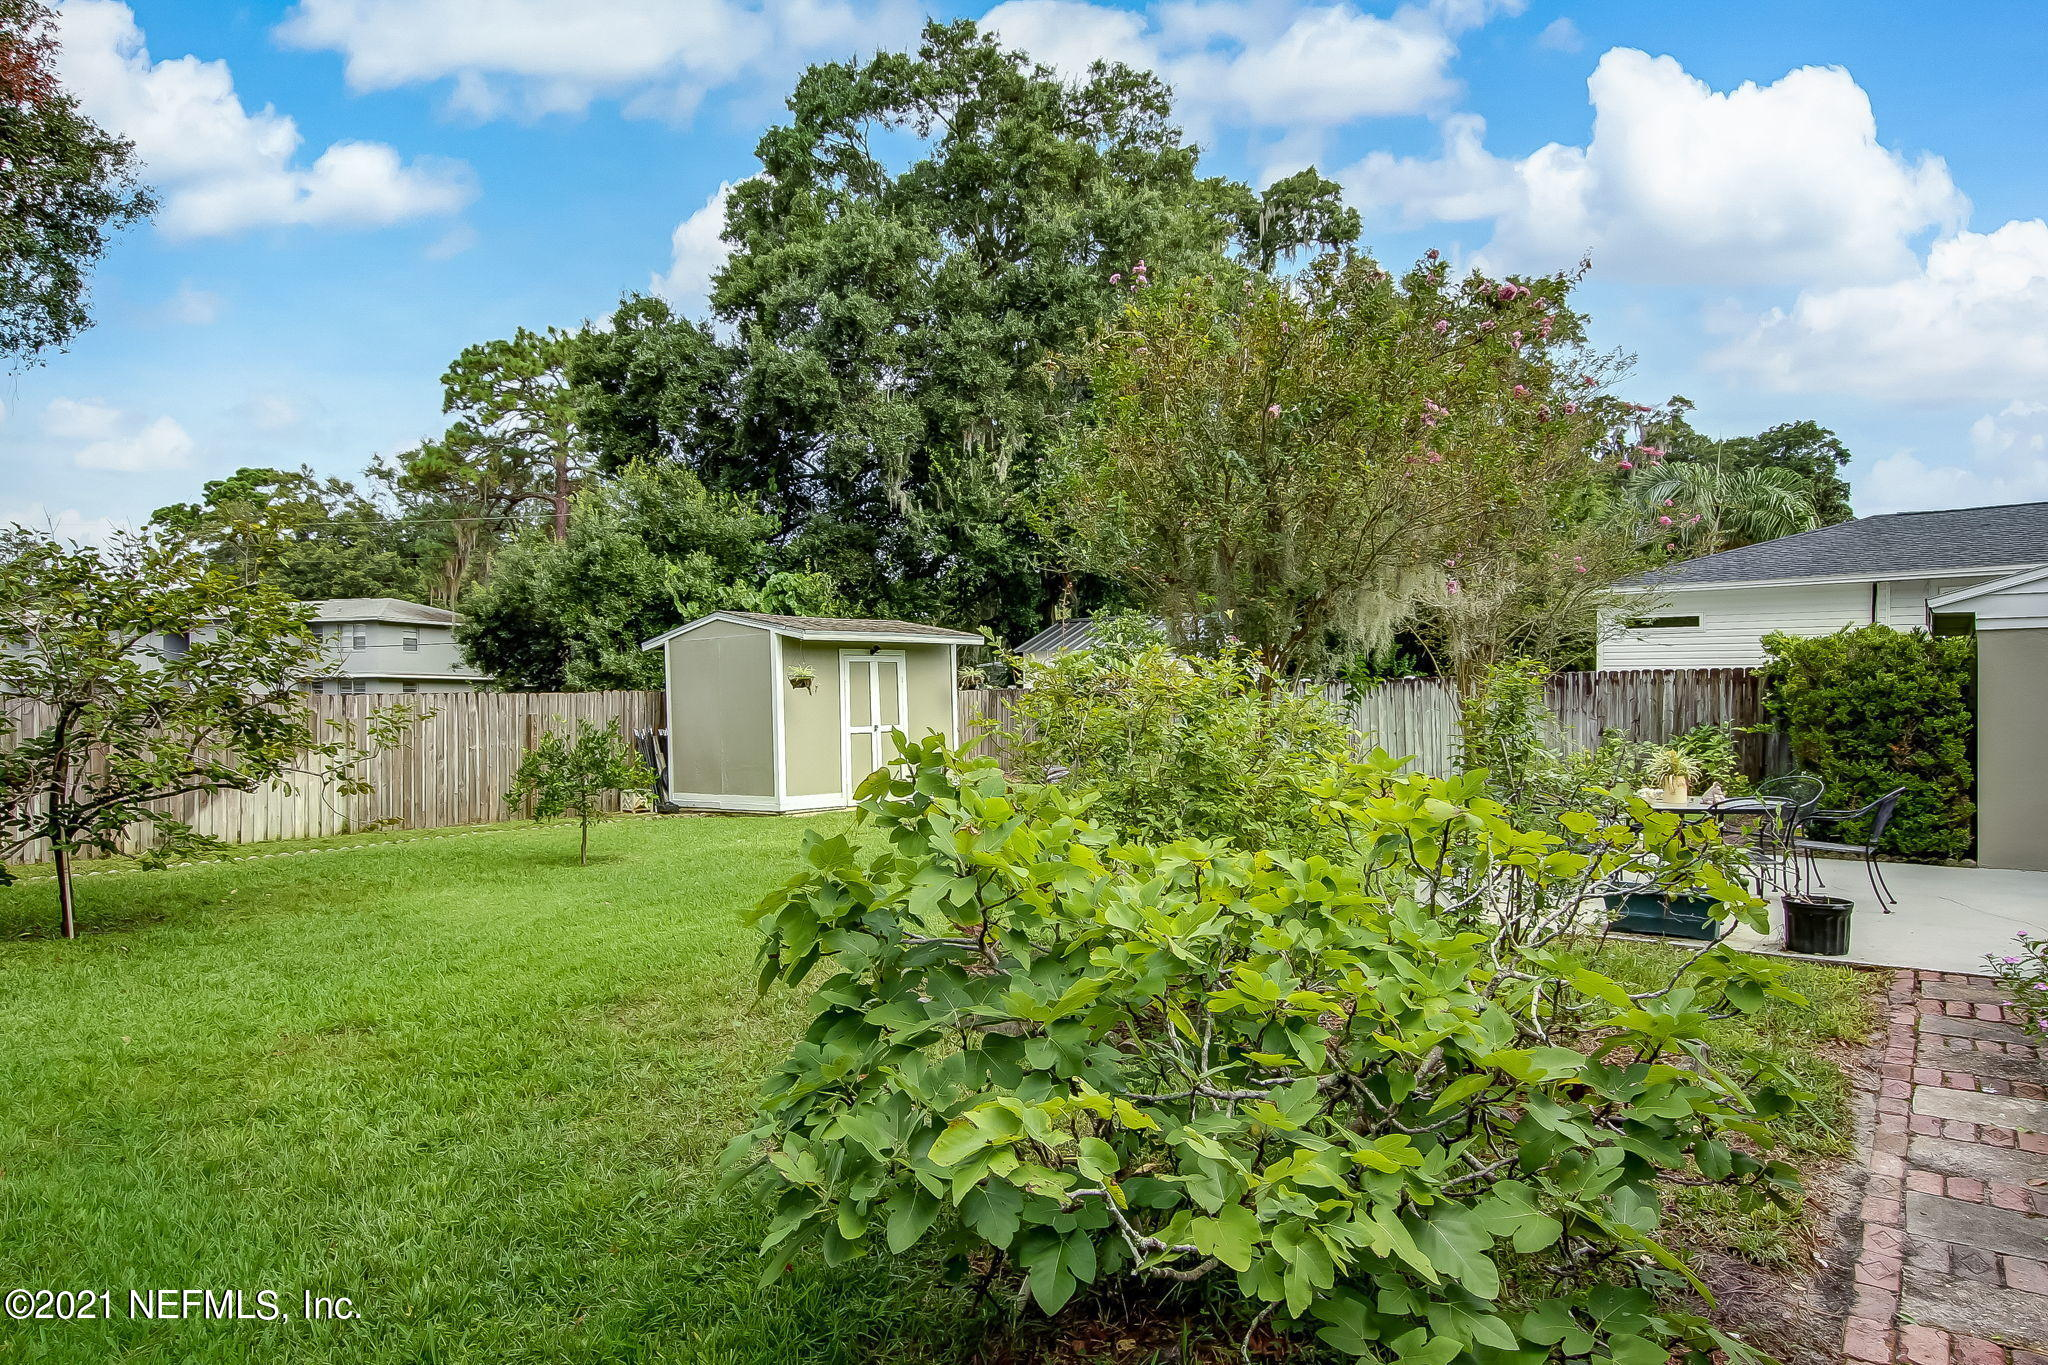 Private Fenced Backyard with Storage She